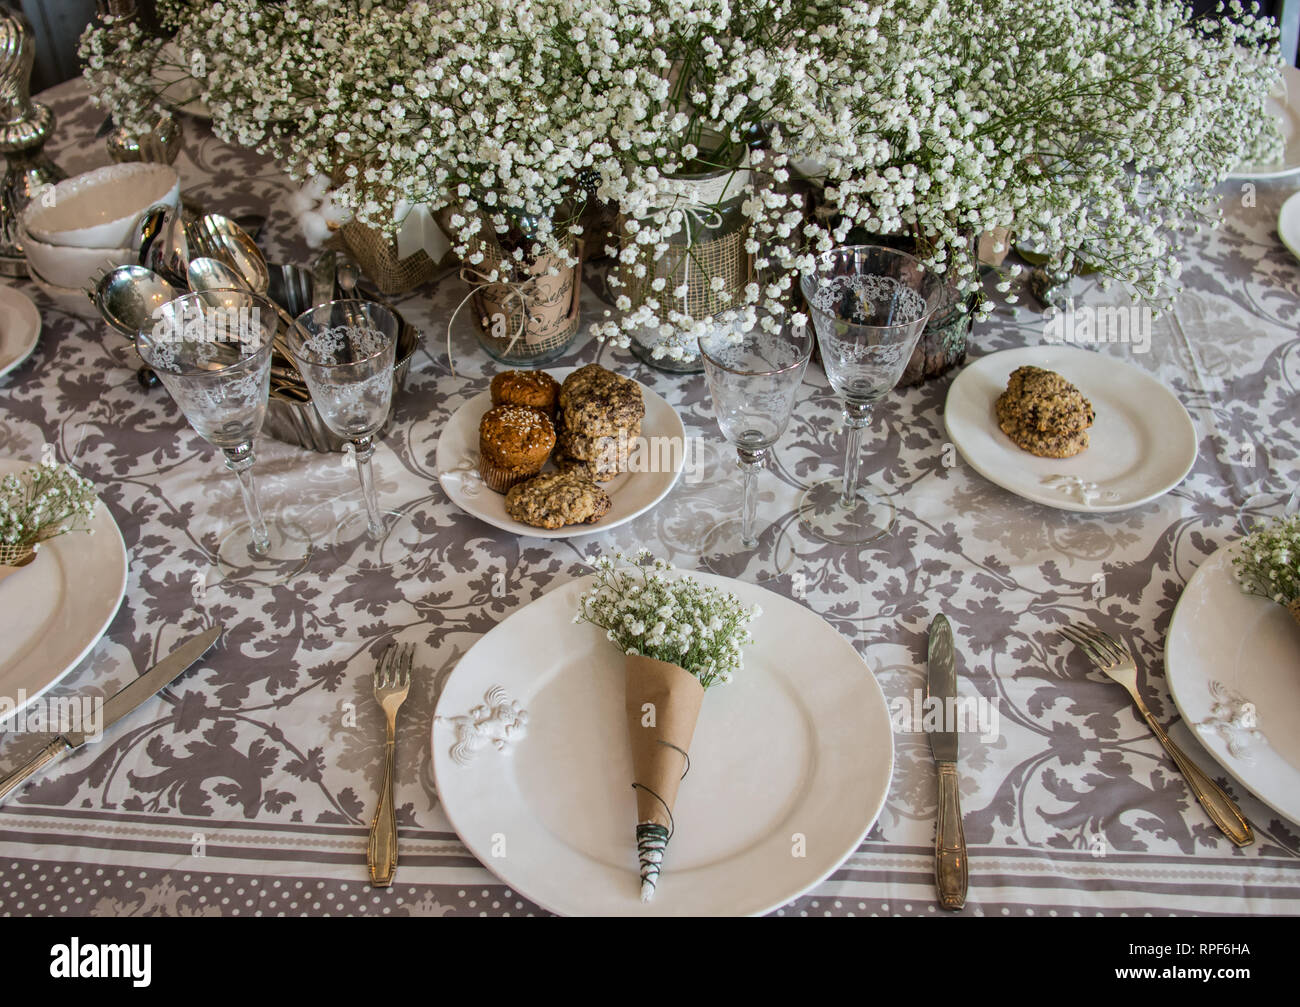 Wedding Decoration For Table Bouquet Of White Flowers In The Glass